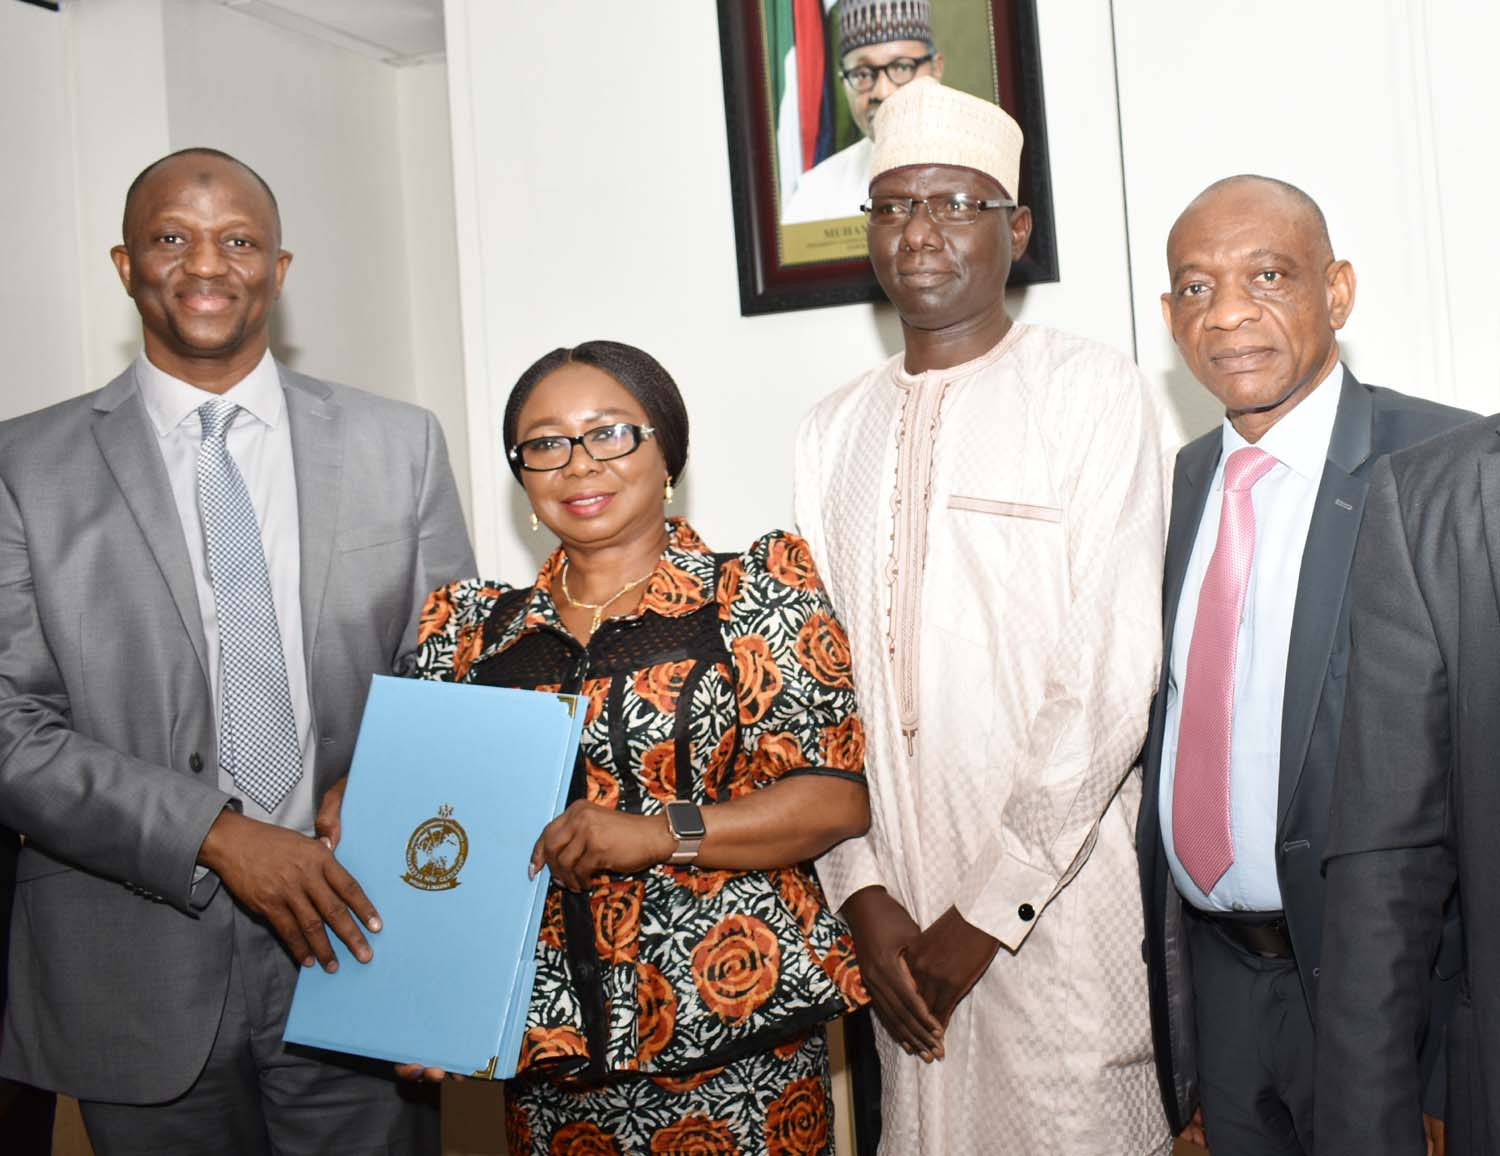 SEC, 1,  L-R,  Associate Director, Intelligence and Investigation Support, Nigerian Financial Intelligence Unit Mr Mustapha Abdulrahman, Director, NFIU Mr Modibbo Tukur, Acting, Director General, Securities and Exchange Commission, Ms Mary Uduk and Acting Executive Commissioner, Operations, SEC  Mr Isyaku Tilde during a Meeting between SEC and NFIU in Abuja, Wednesday